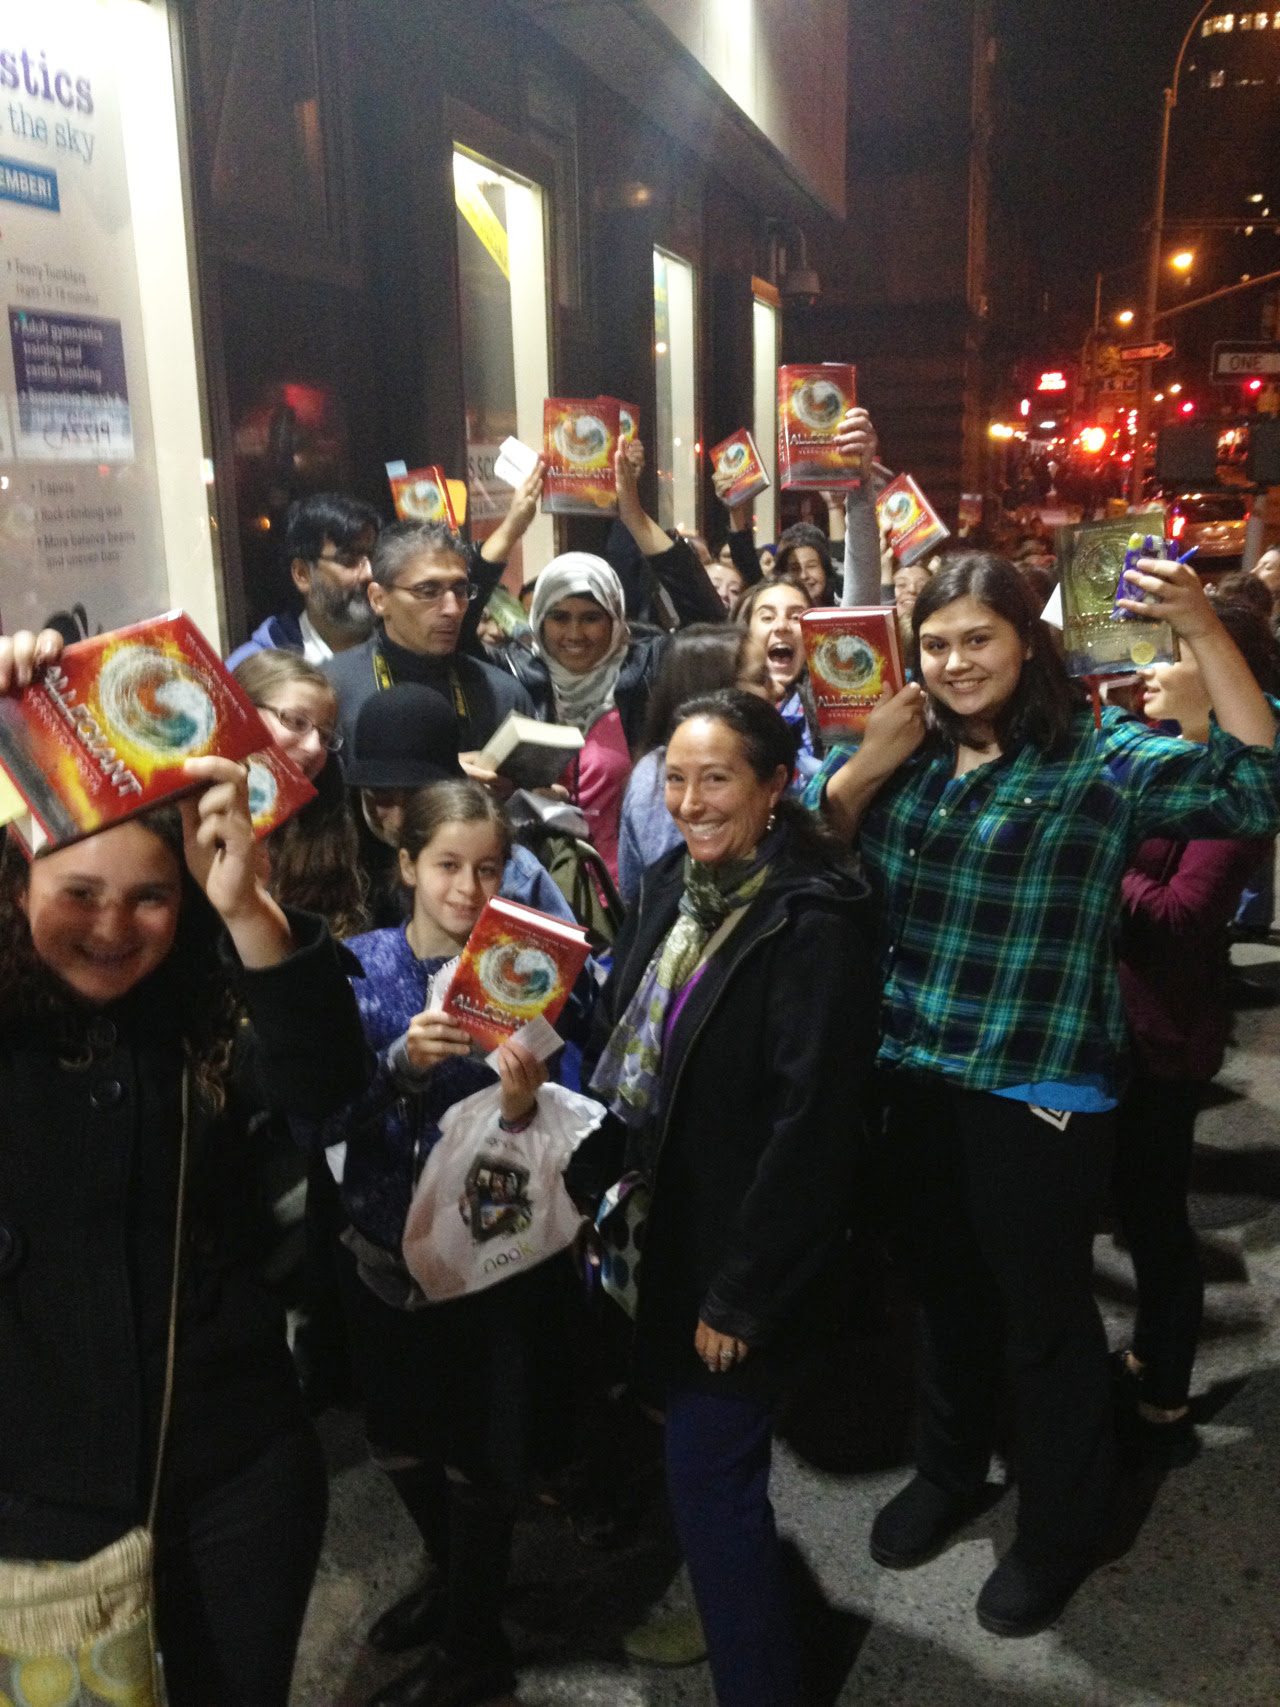 A few of the Initiates lined up for Veronica Roth's signing at last night's NYC ALLEGIANT tour event at the 92nd Street Y!